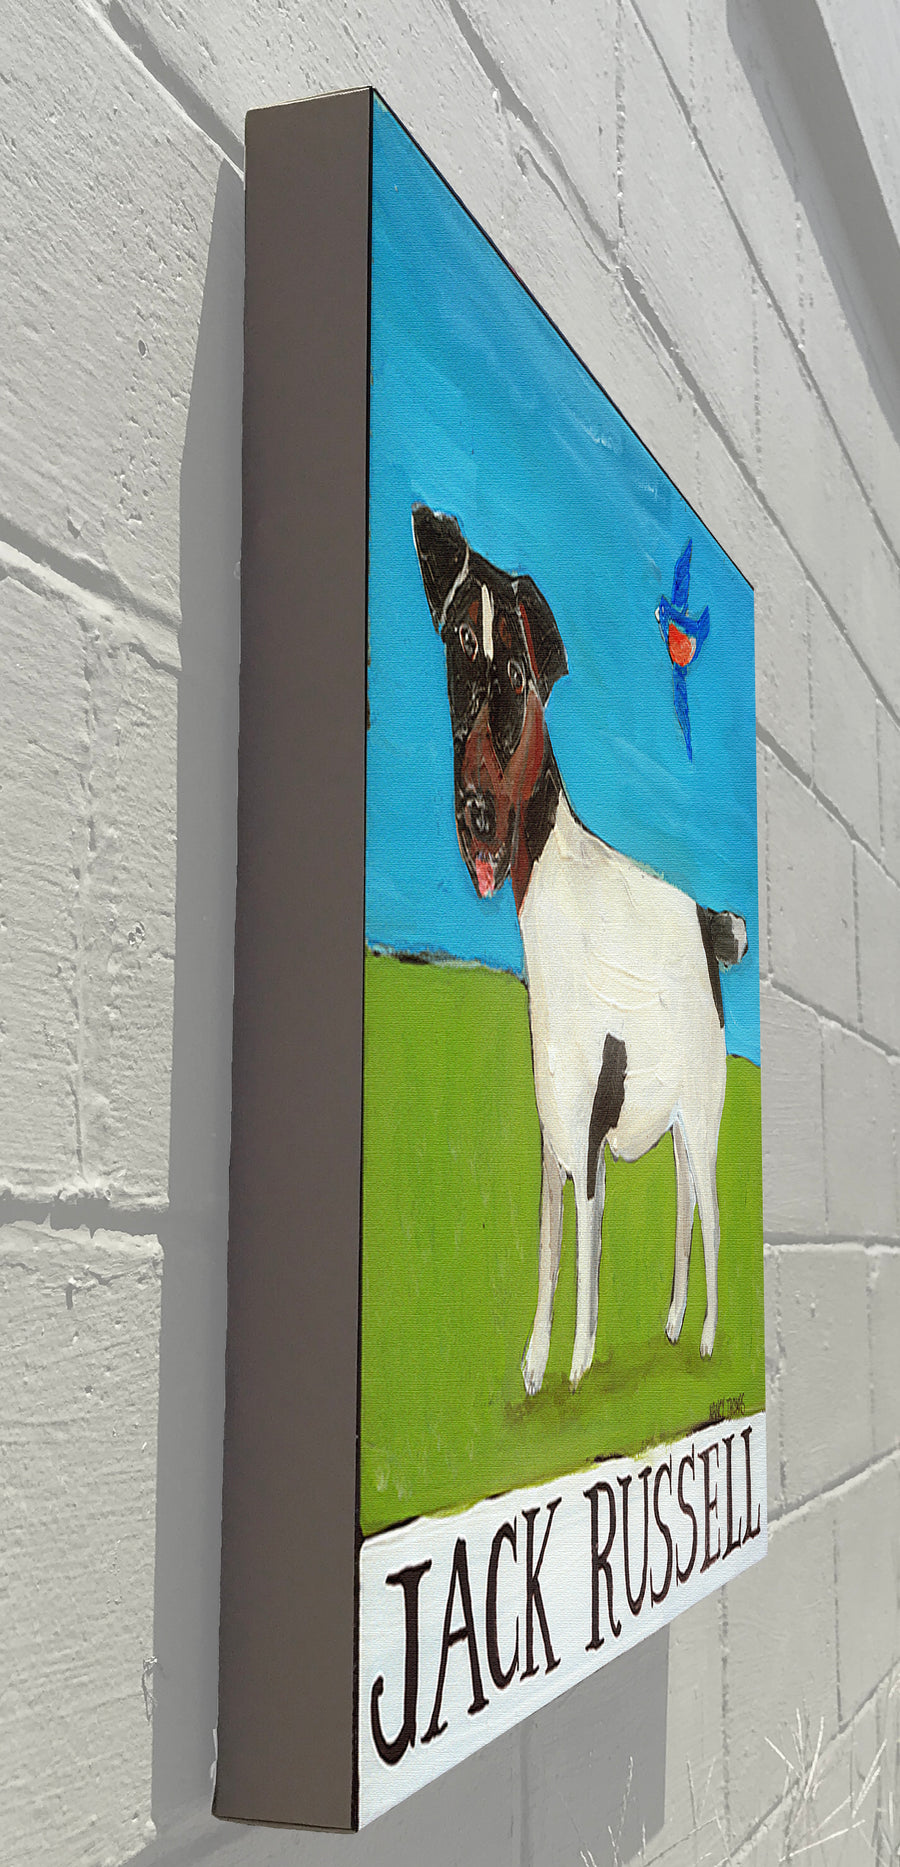 Gallery Grand - Doggie - Jack Russell